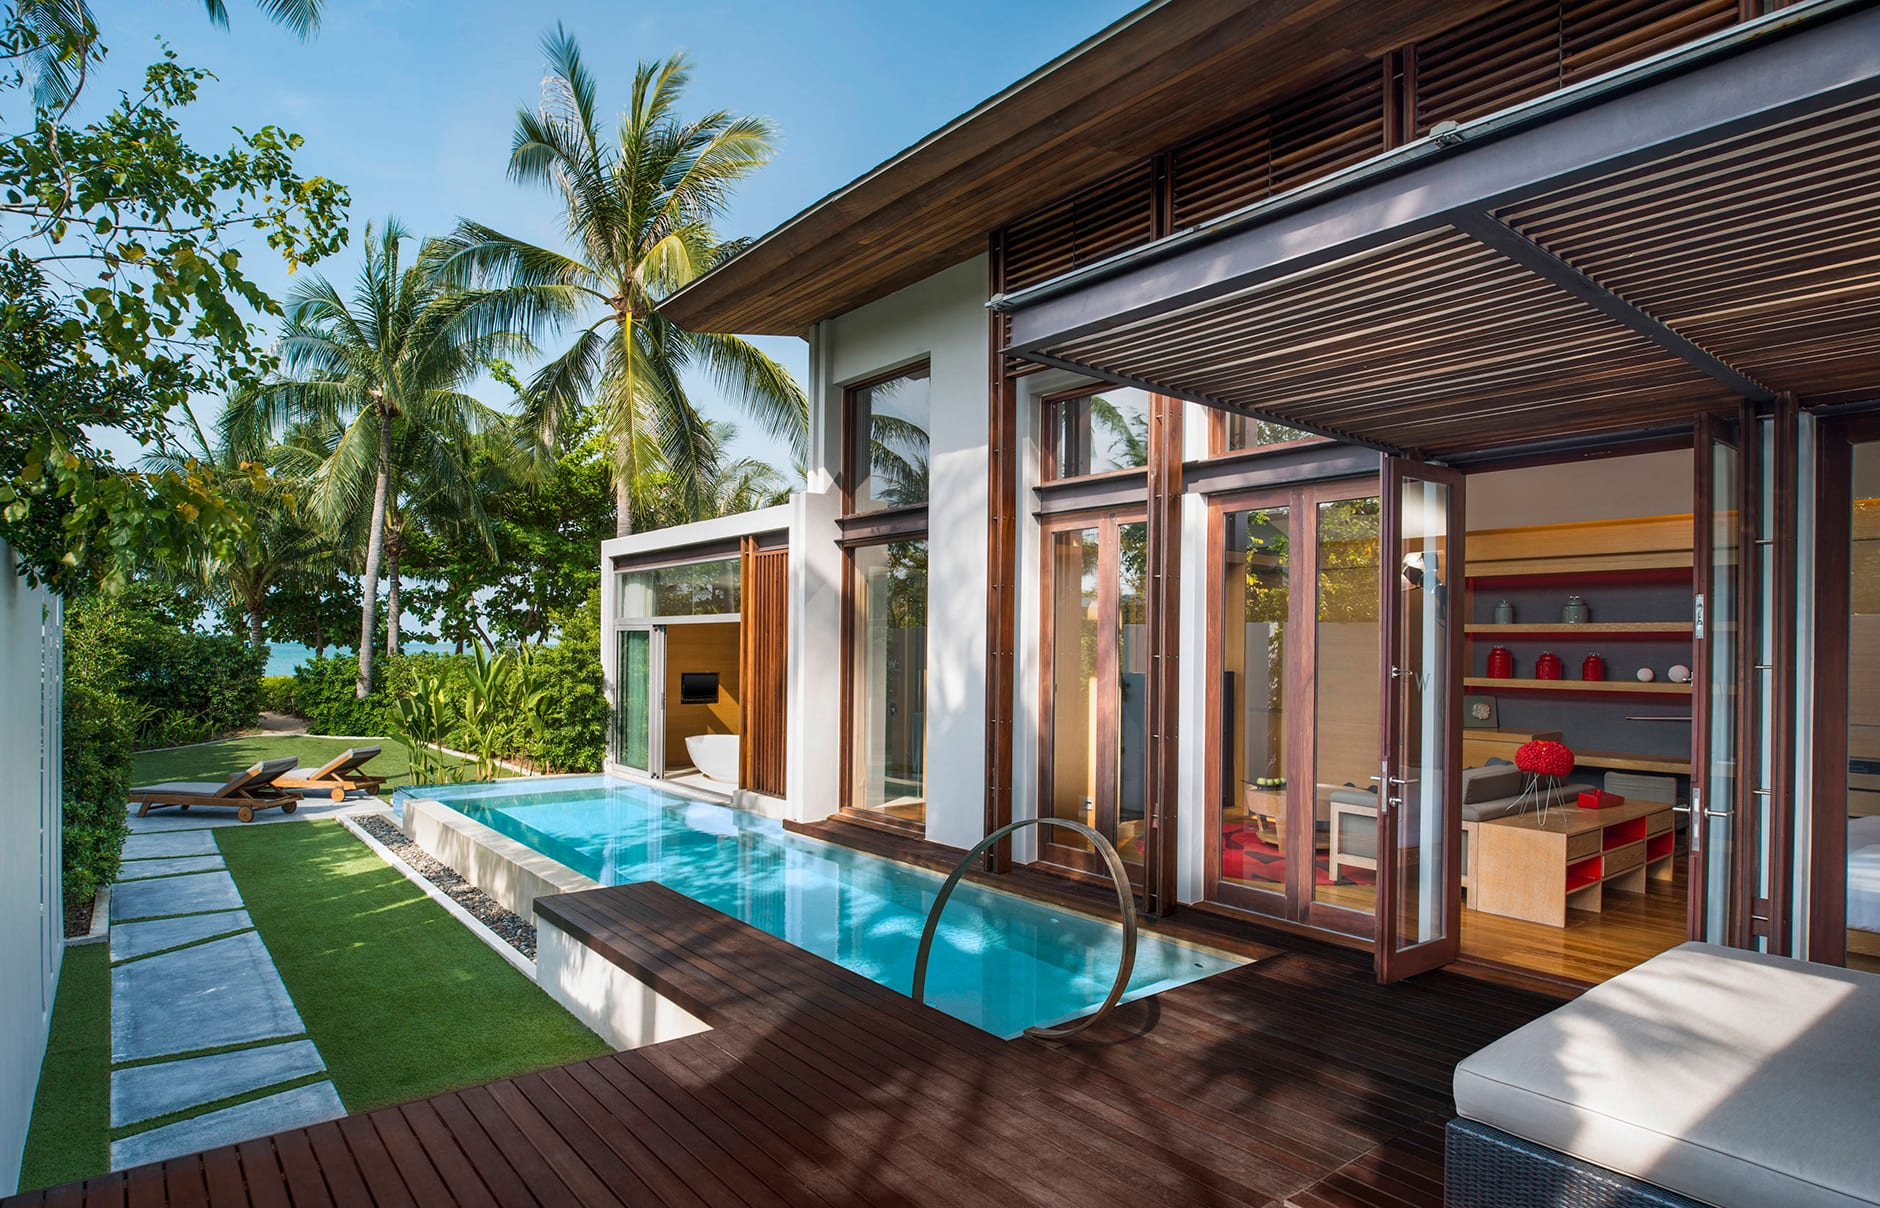 W Koh Samui, Thailand. Hotel Review by TravelPlusStyle. Photo © Marriott International